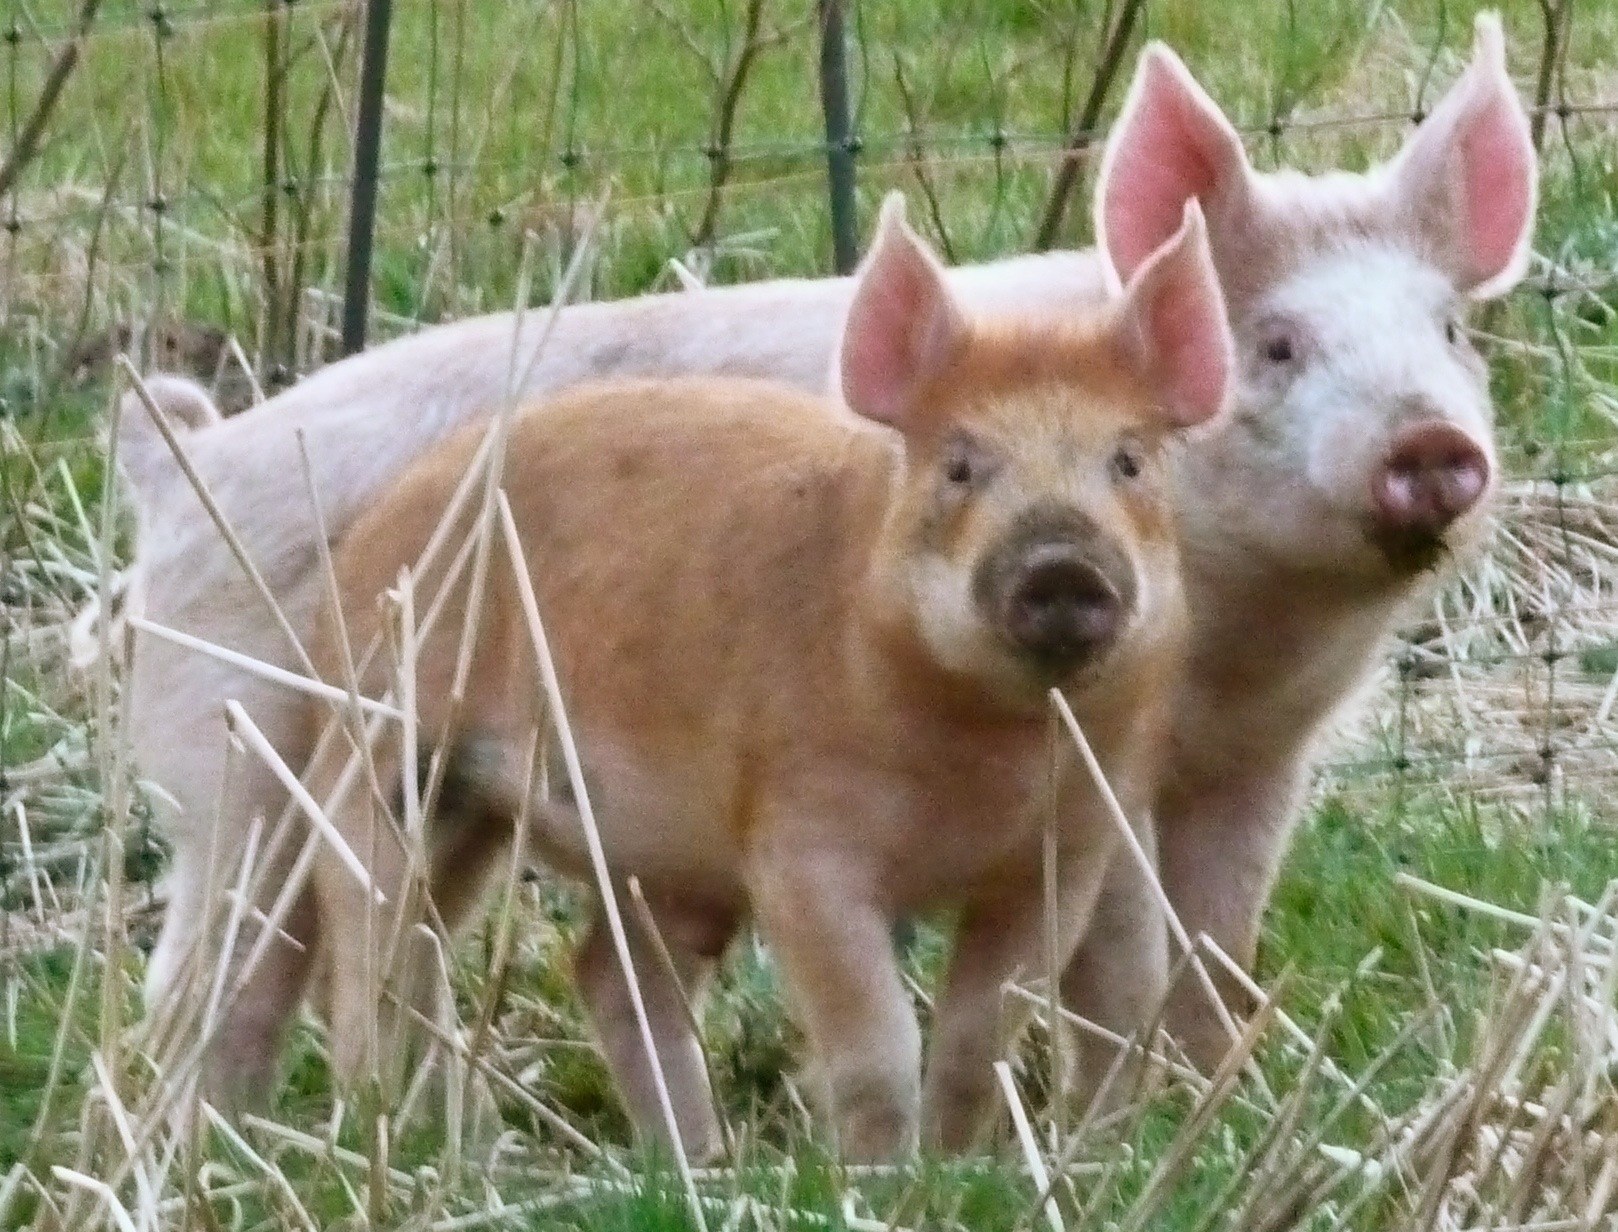 piglets Rusty and Dusty